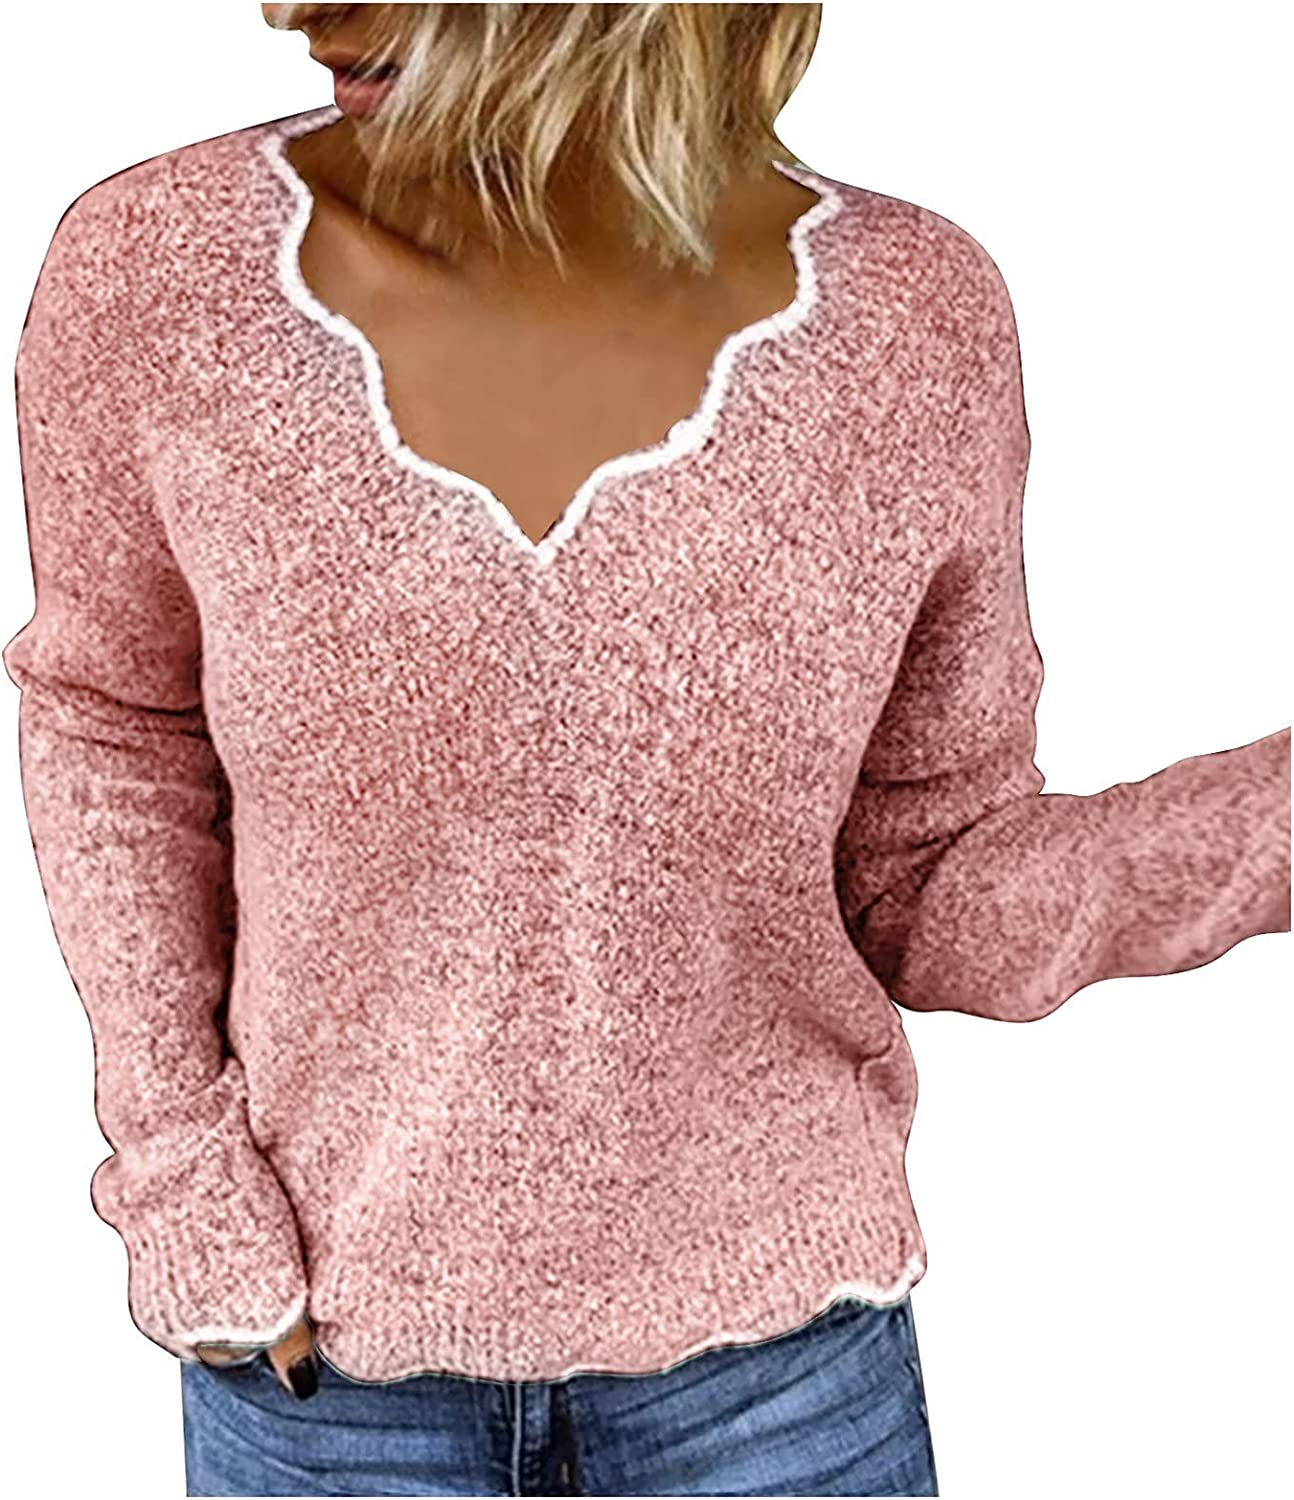 Women's Regular Fit Knitted Sweater Long Sleeve V-Neck Long Sleeve Color Block Pullover Sweaters Tops Ripped Knit Jumper